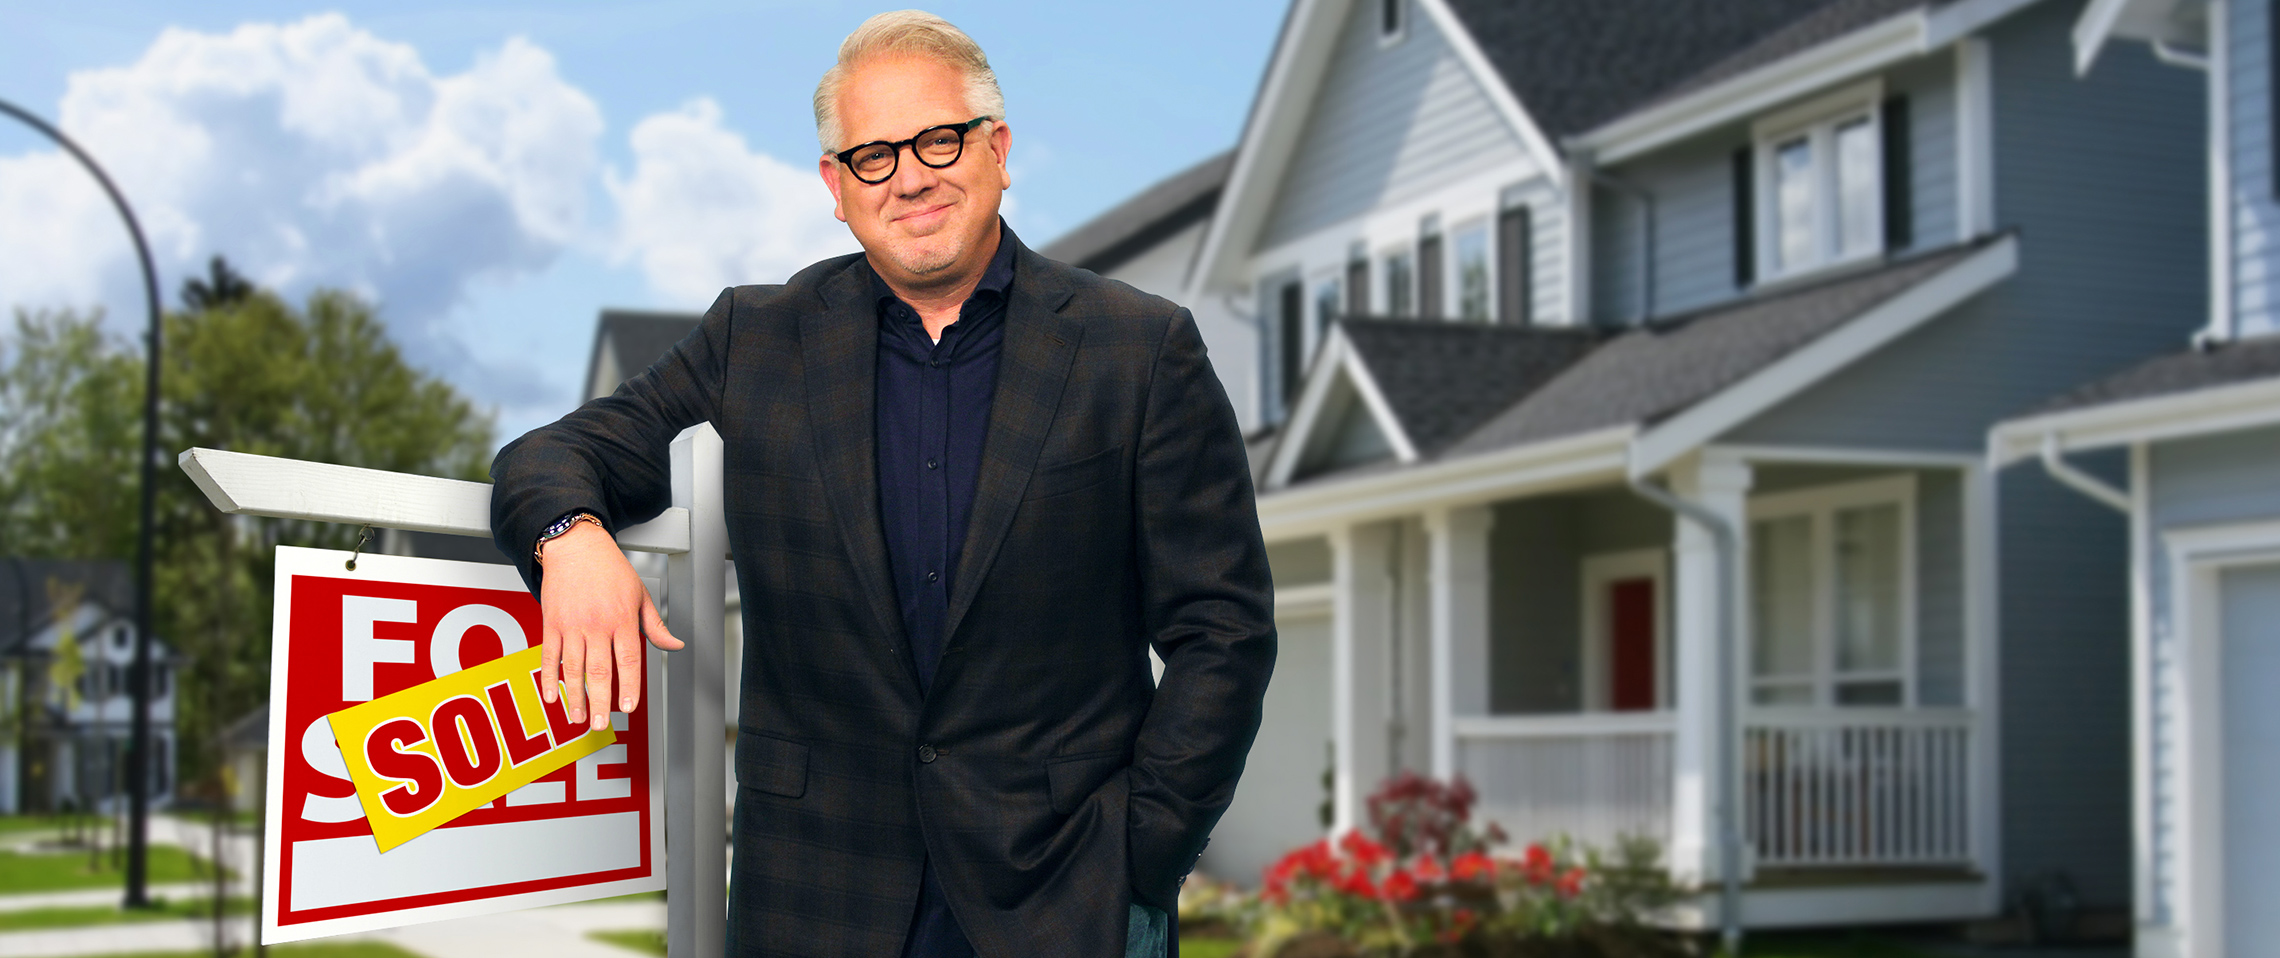 Glenn Beck leaning on a Sold sign